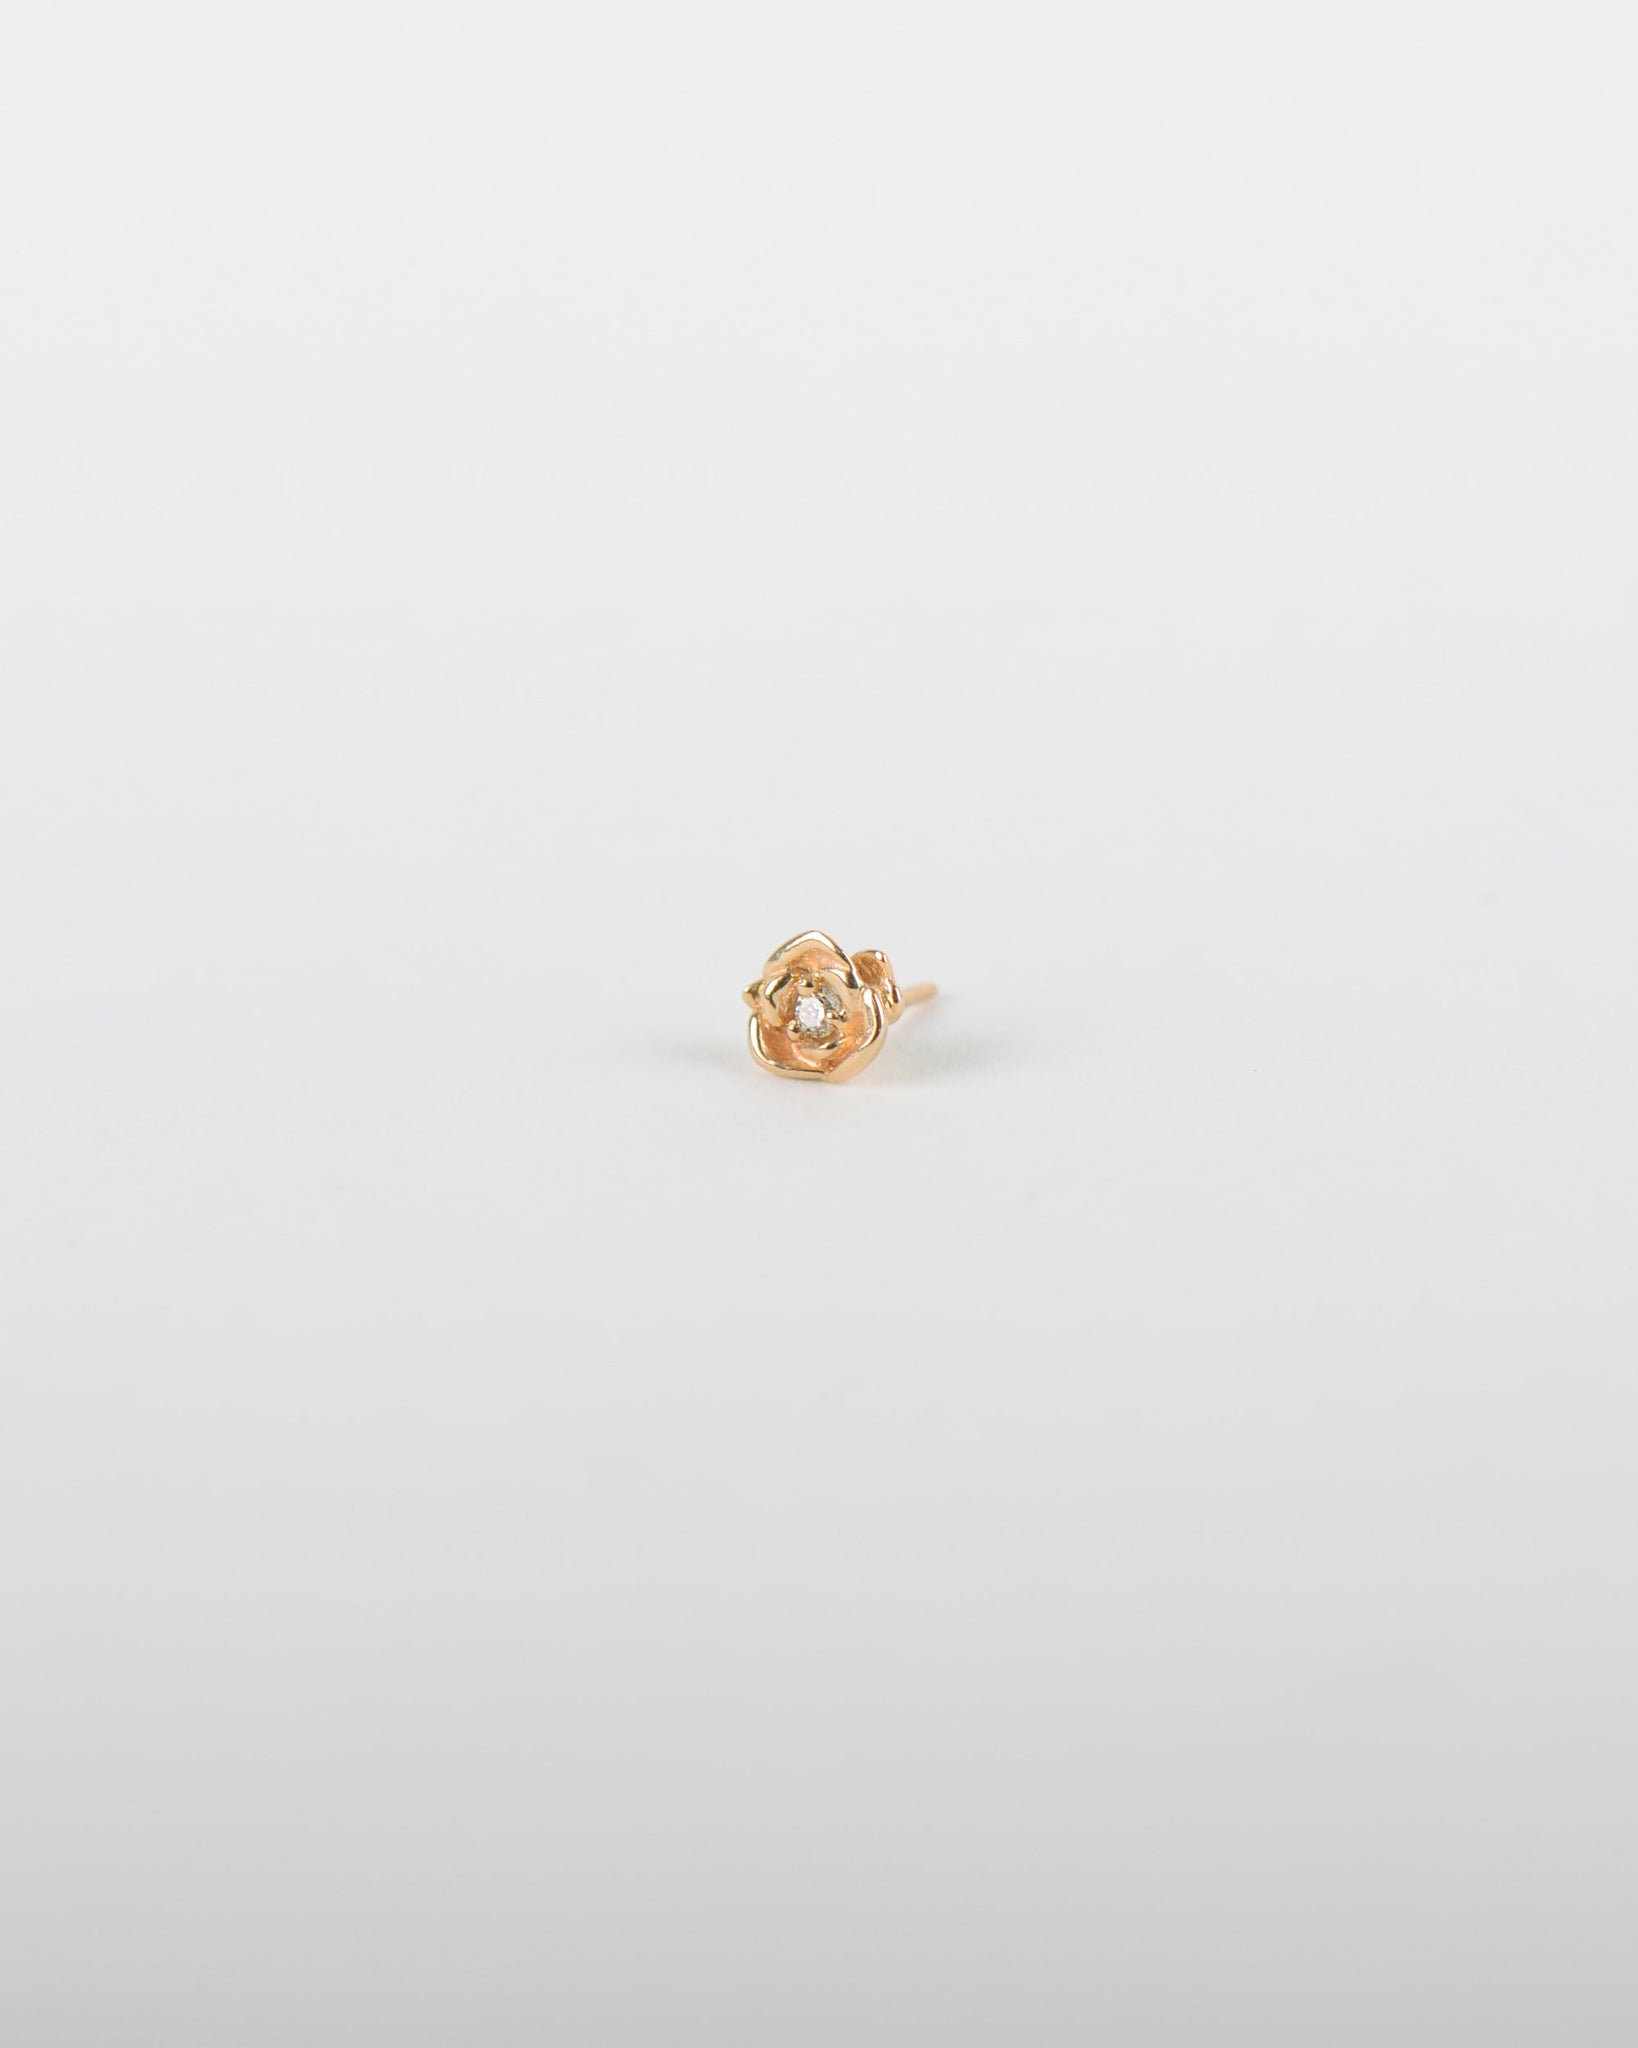 Rose Earring in Yellow Gold with a Diamond